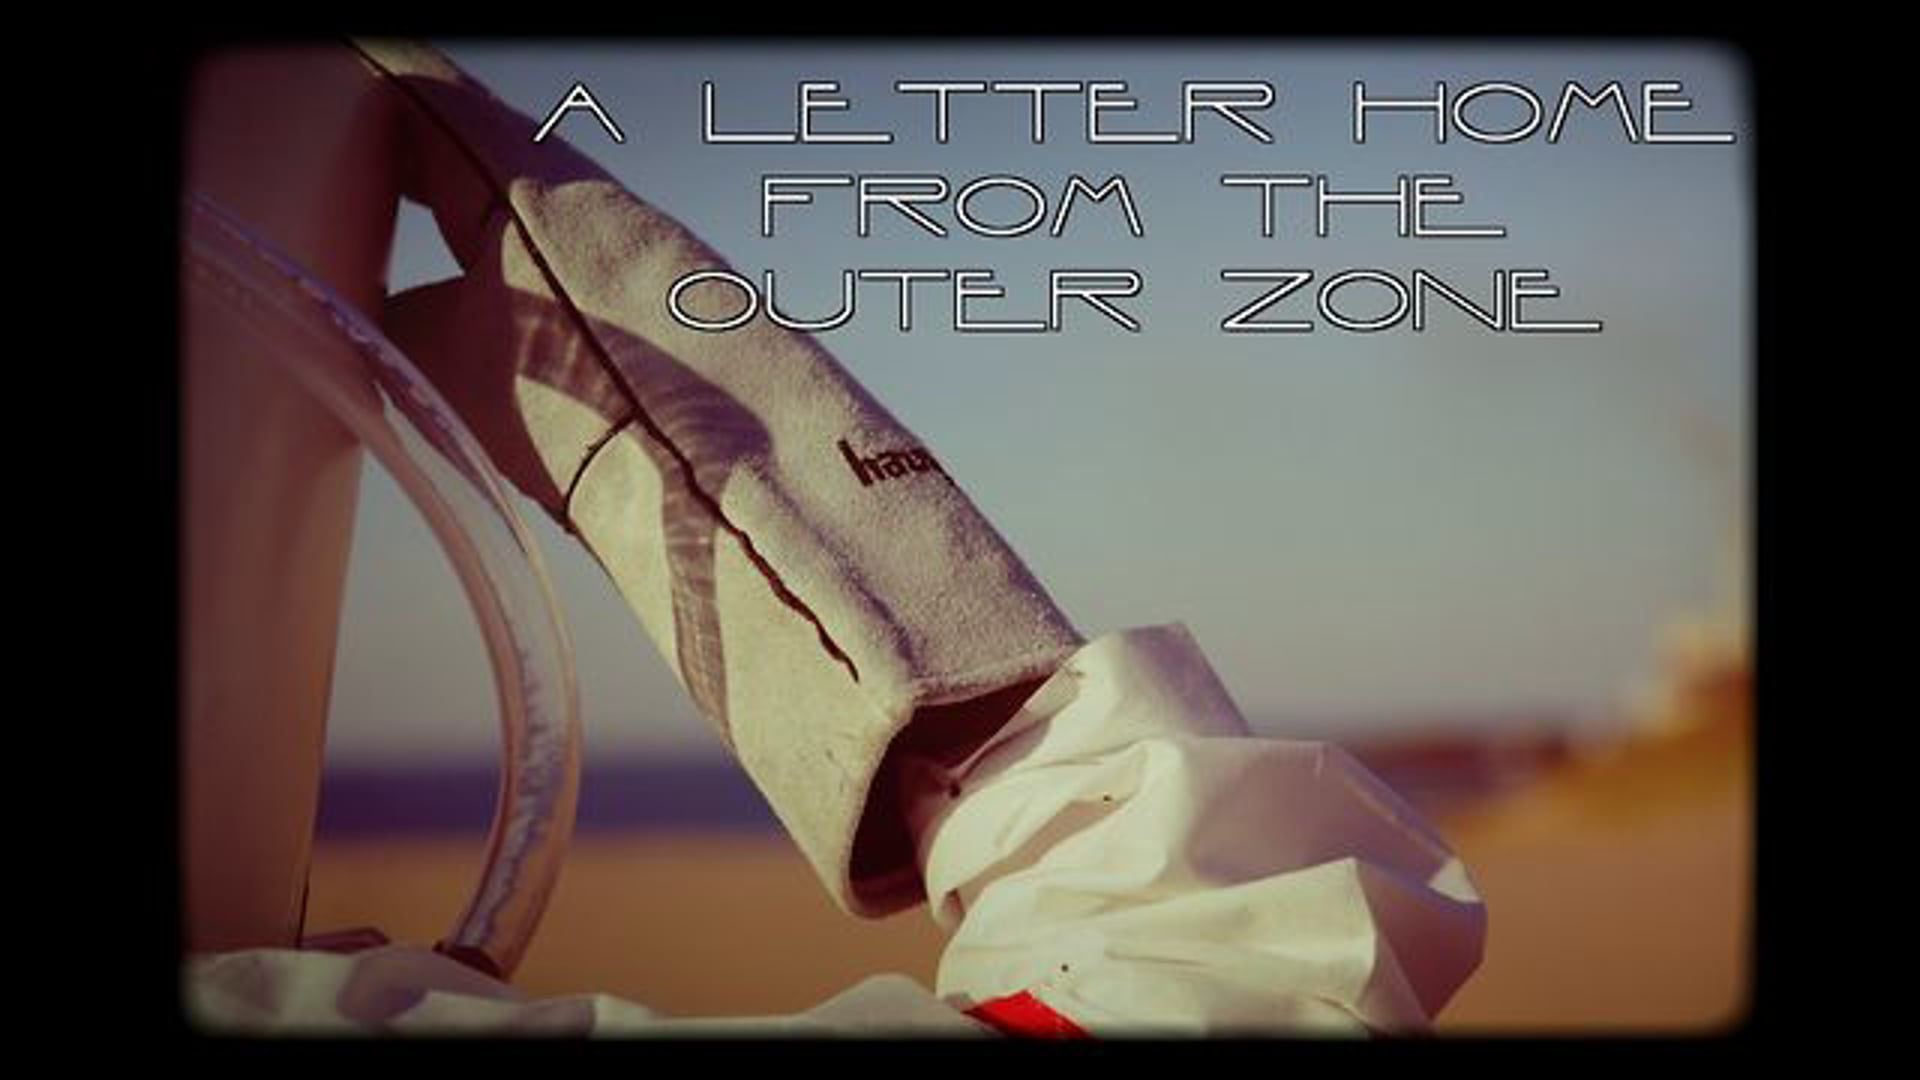 A Letter Home from the Outer Zone